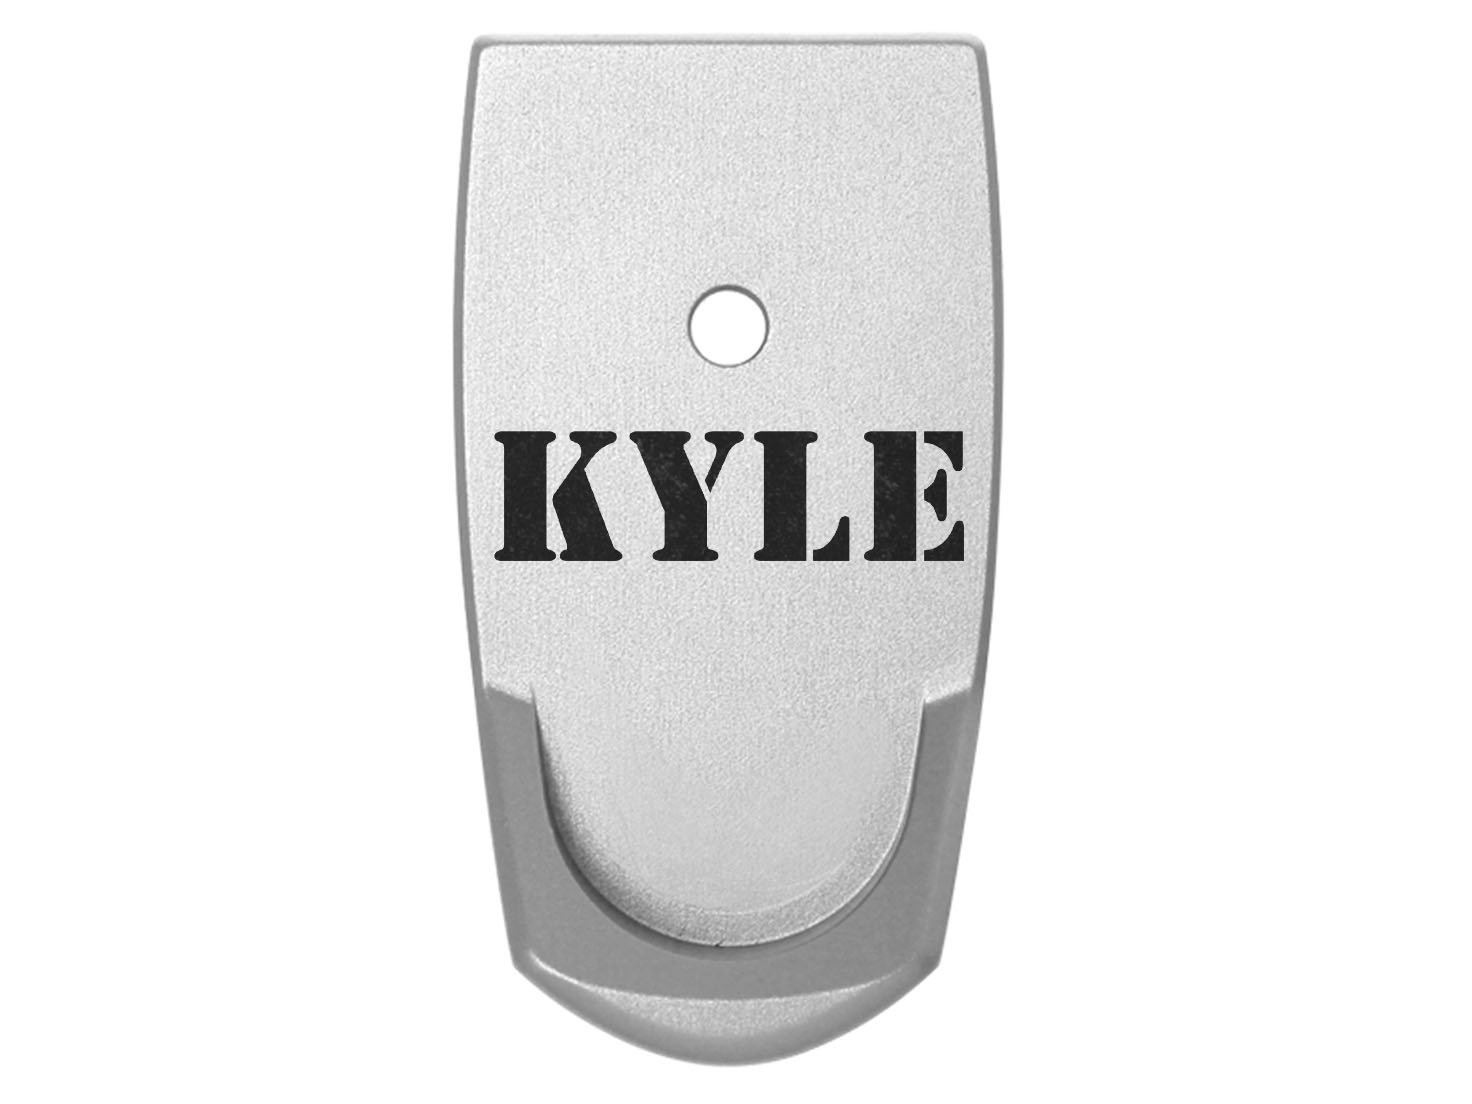 Name Kyle Grip Extension Floor Base Plate V2 Silver Silver for S&W Smith & Wesson Shield 9mm .40